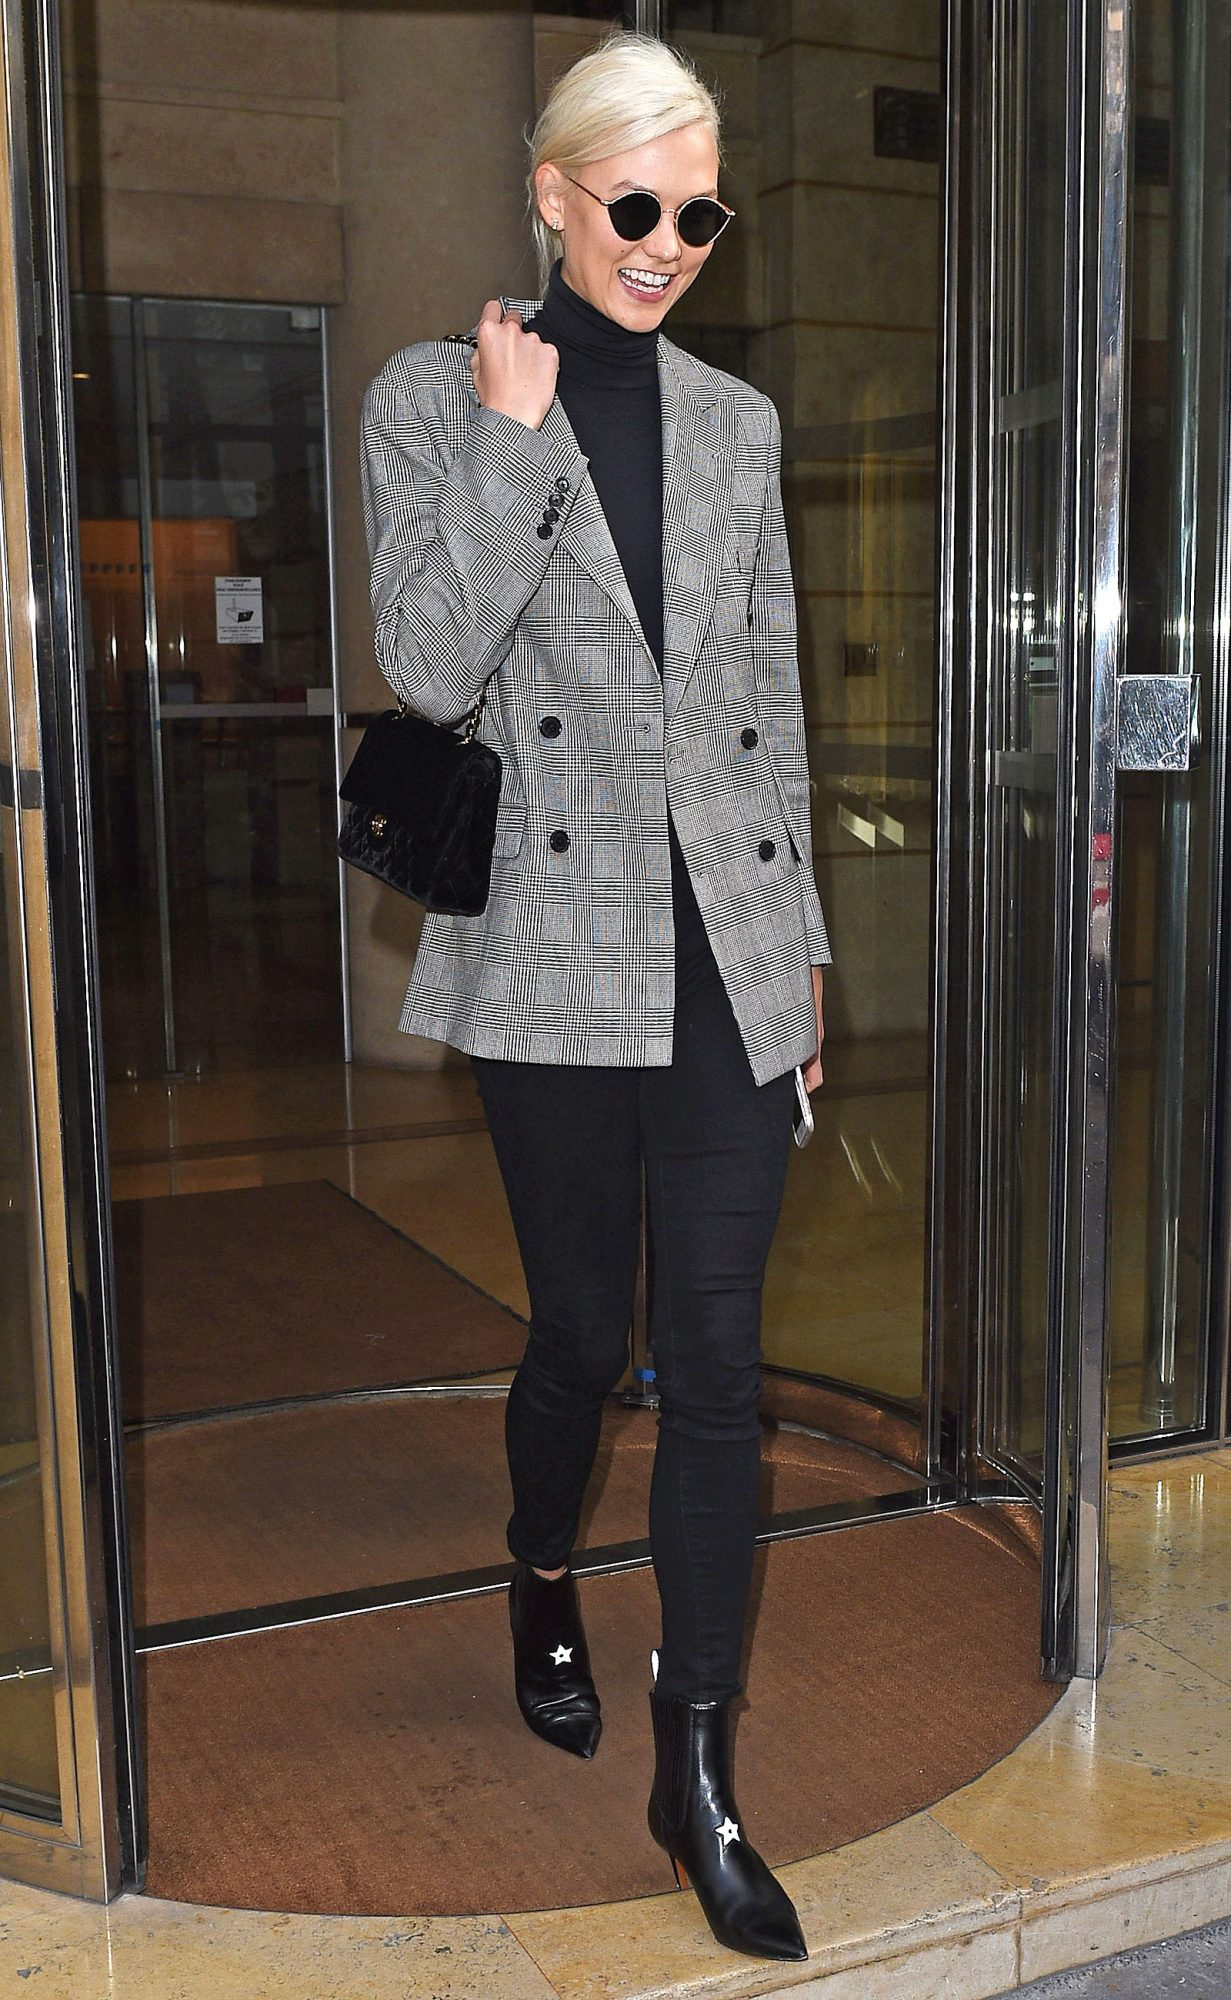 Karlie Kloss is seen at the Royal Monceau hotel in Paris